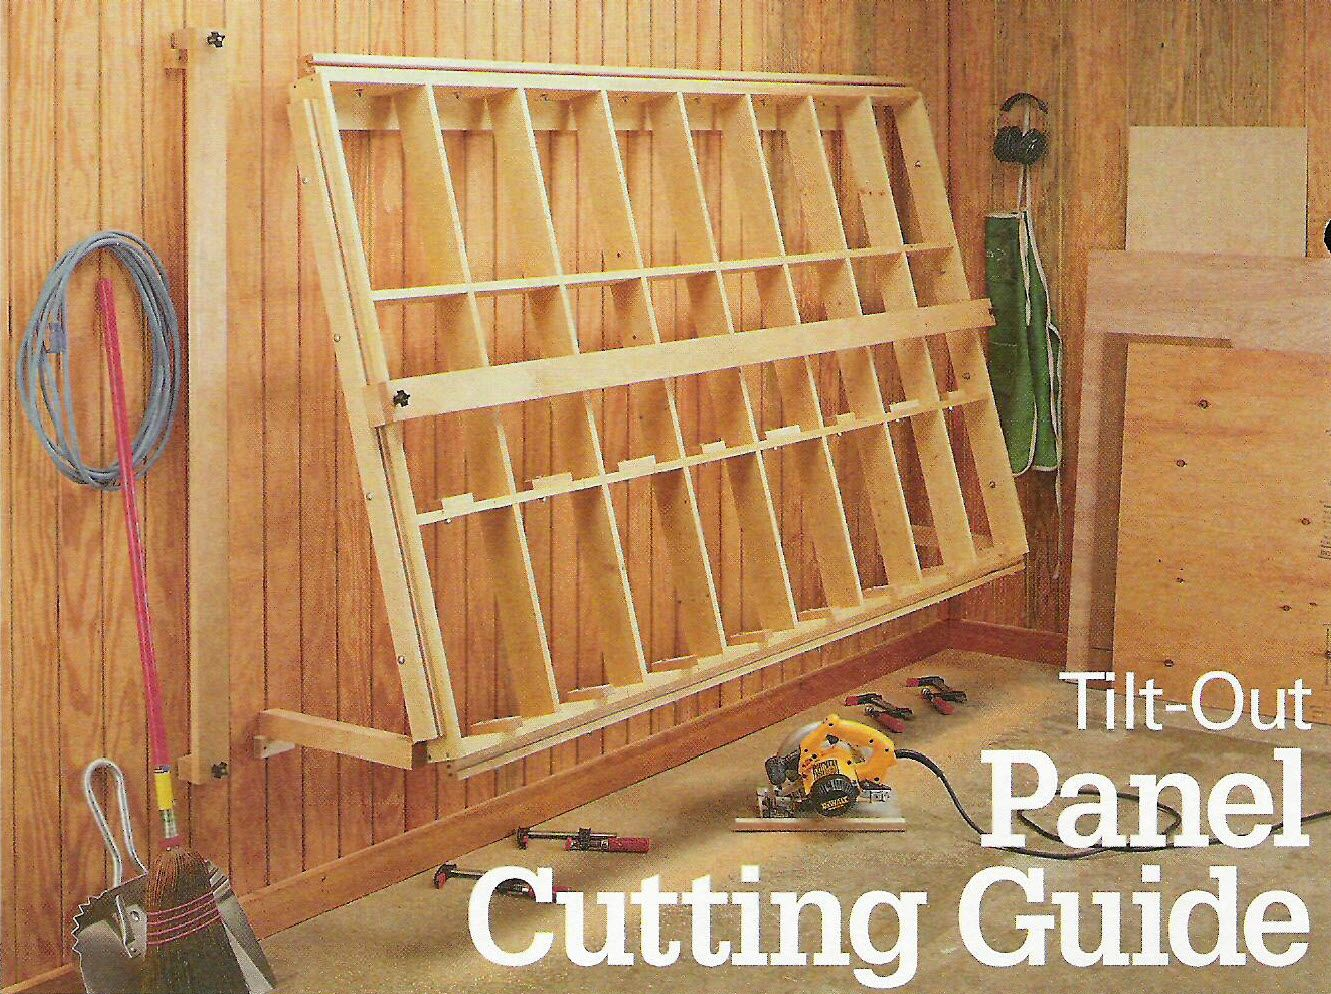 Tilt Out Panel Cutting Guide This Can Be Attached To The